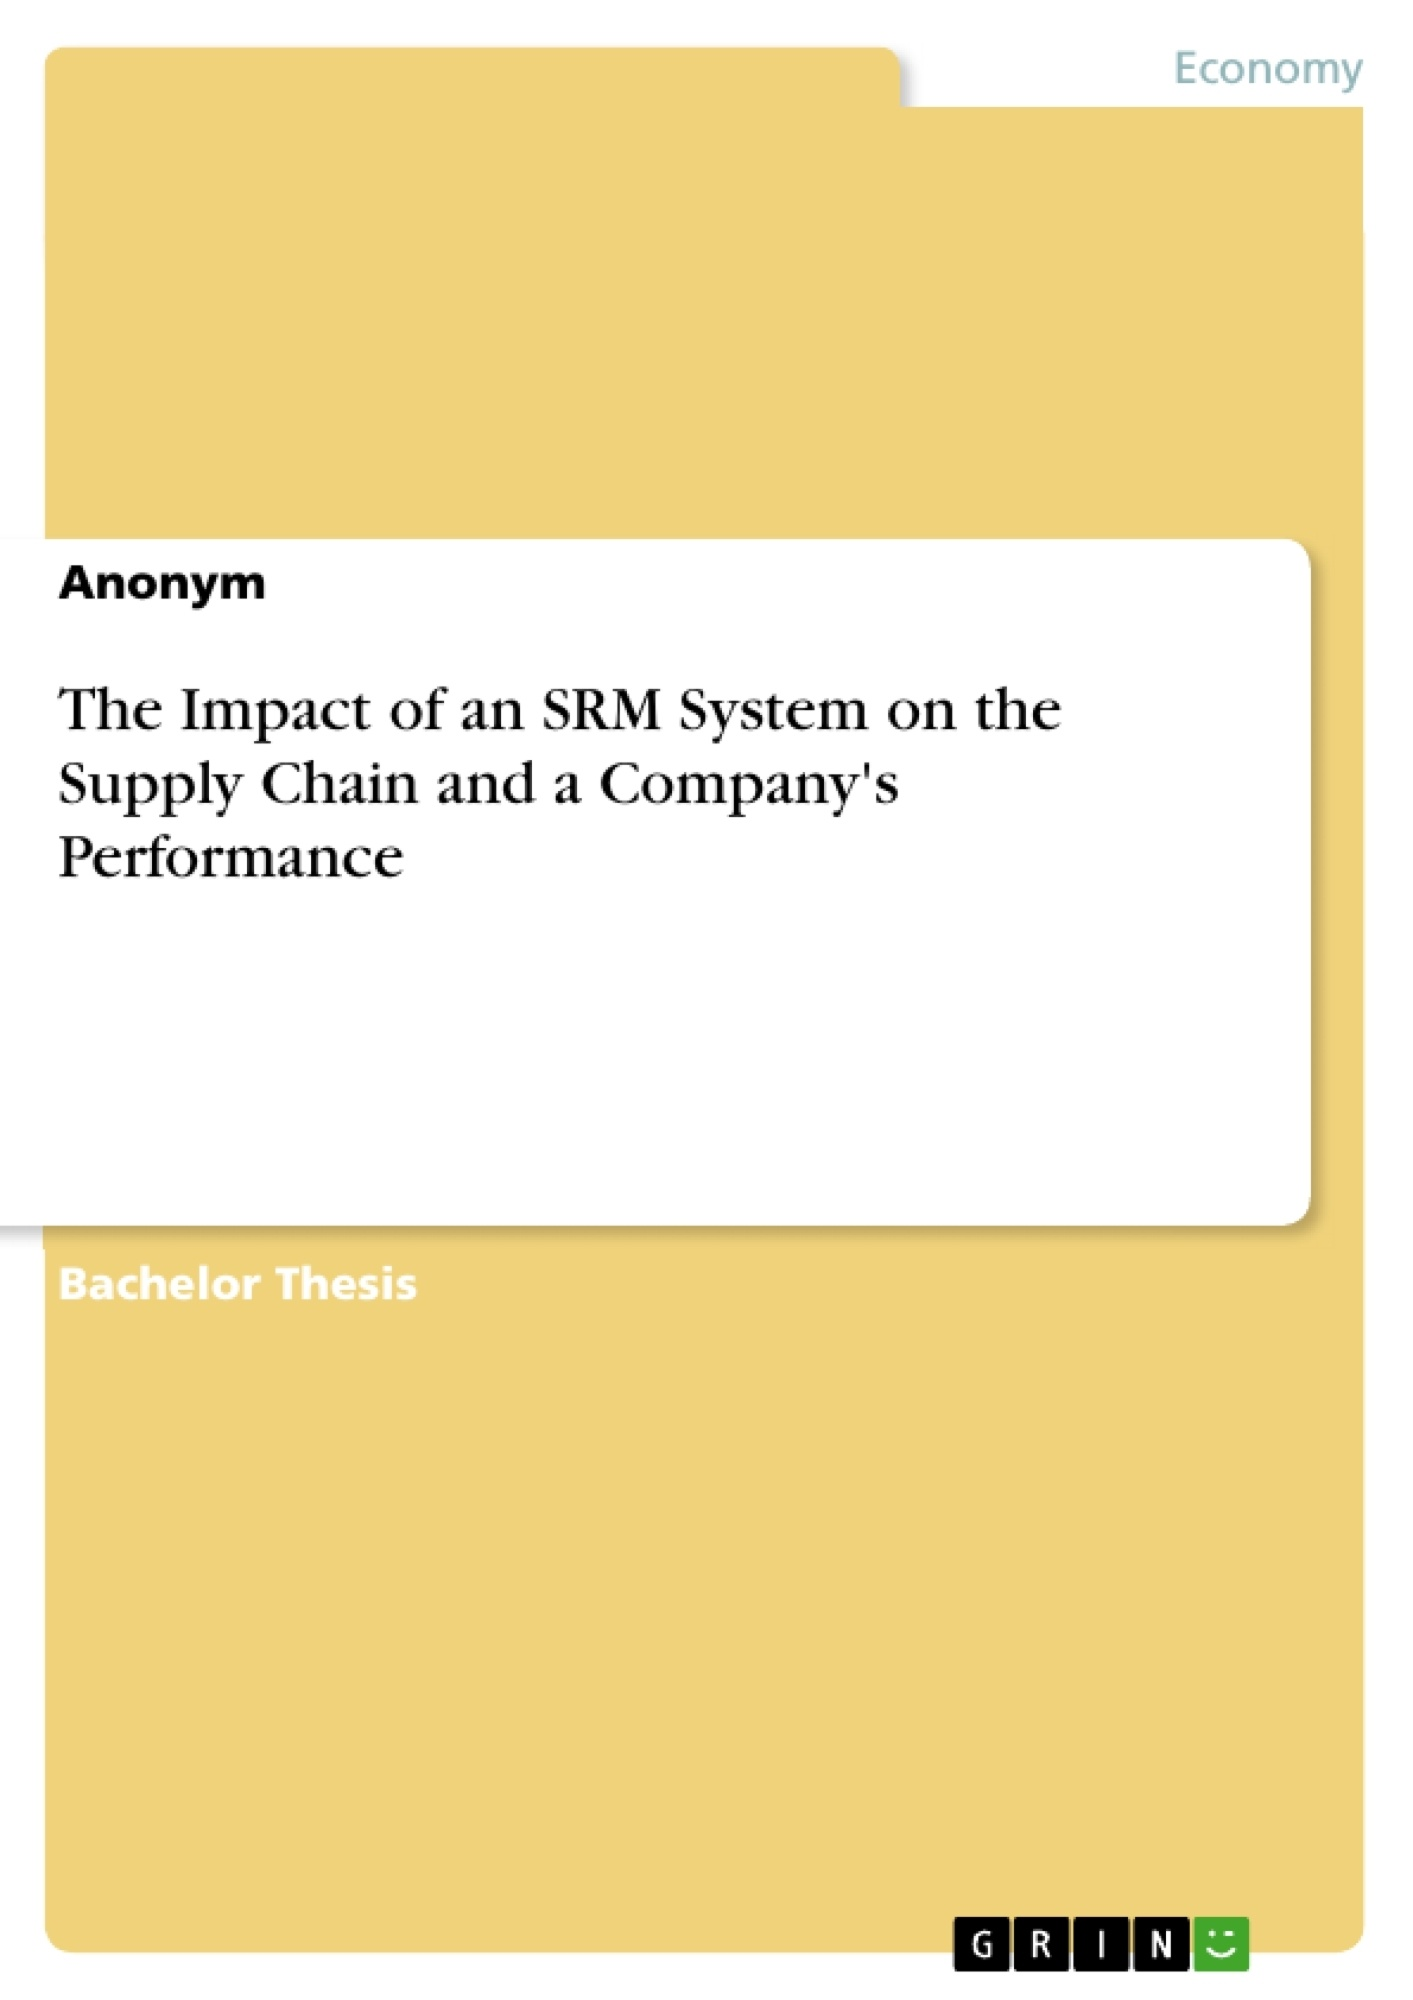 Title: The Impact of an SRM System on the Supply Chain and a Company's Performance